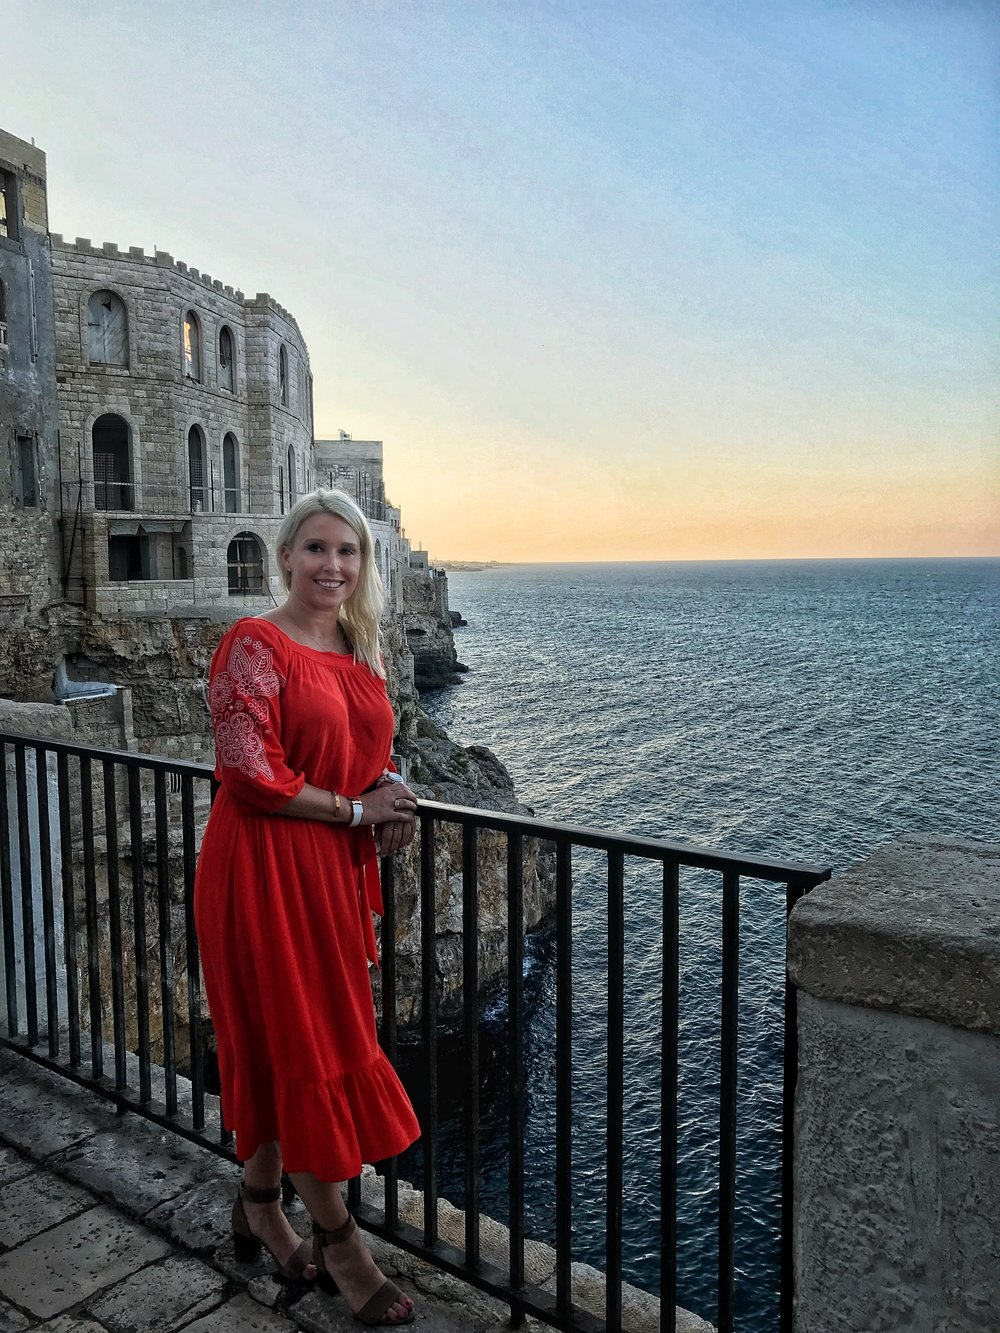 Overlooking the grotto restaurant in Polignano di Mare at sunset